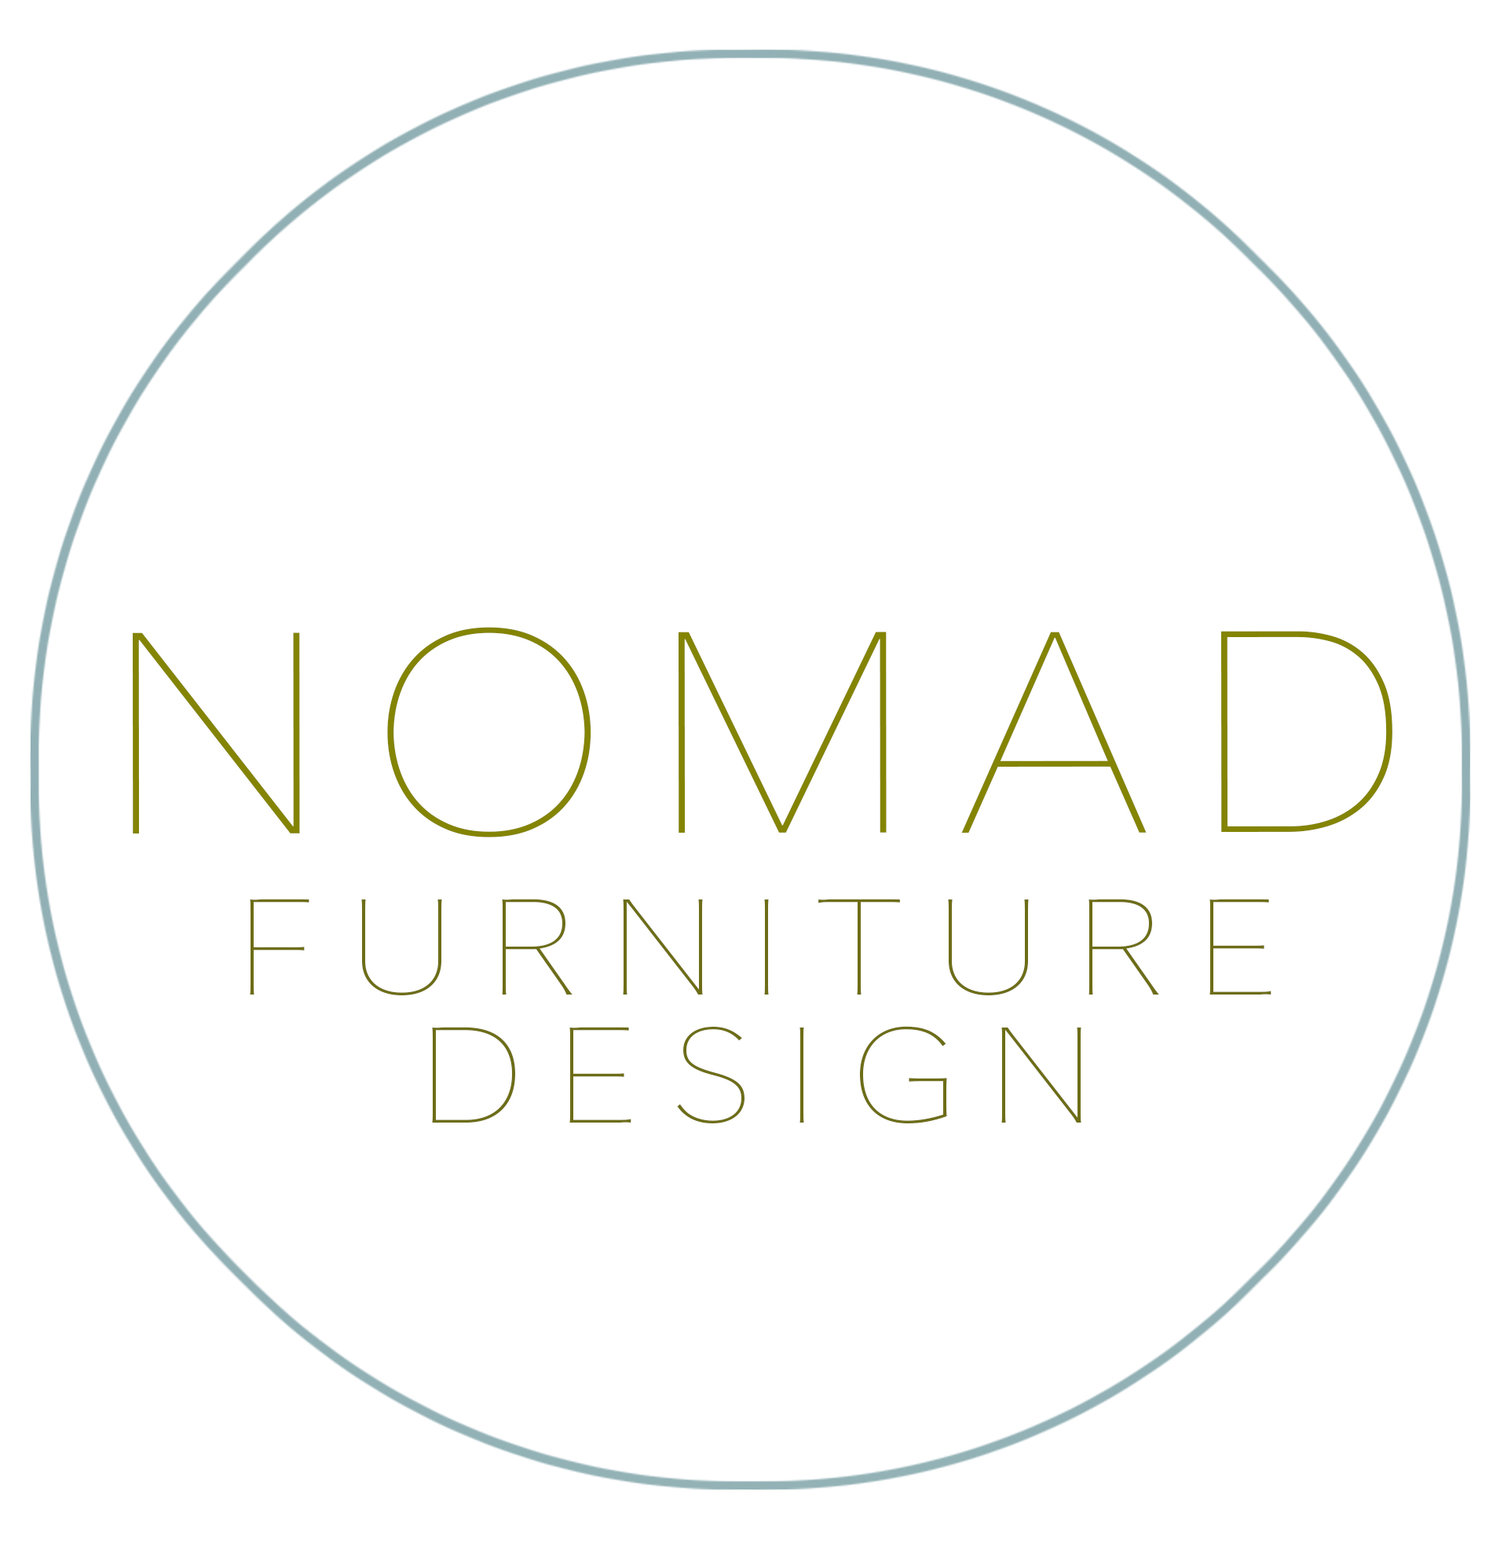 Nomad Furniture Design